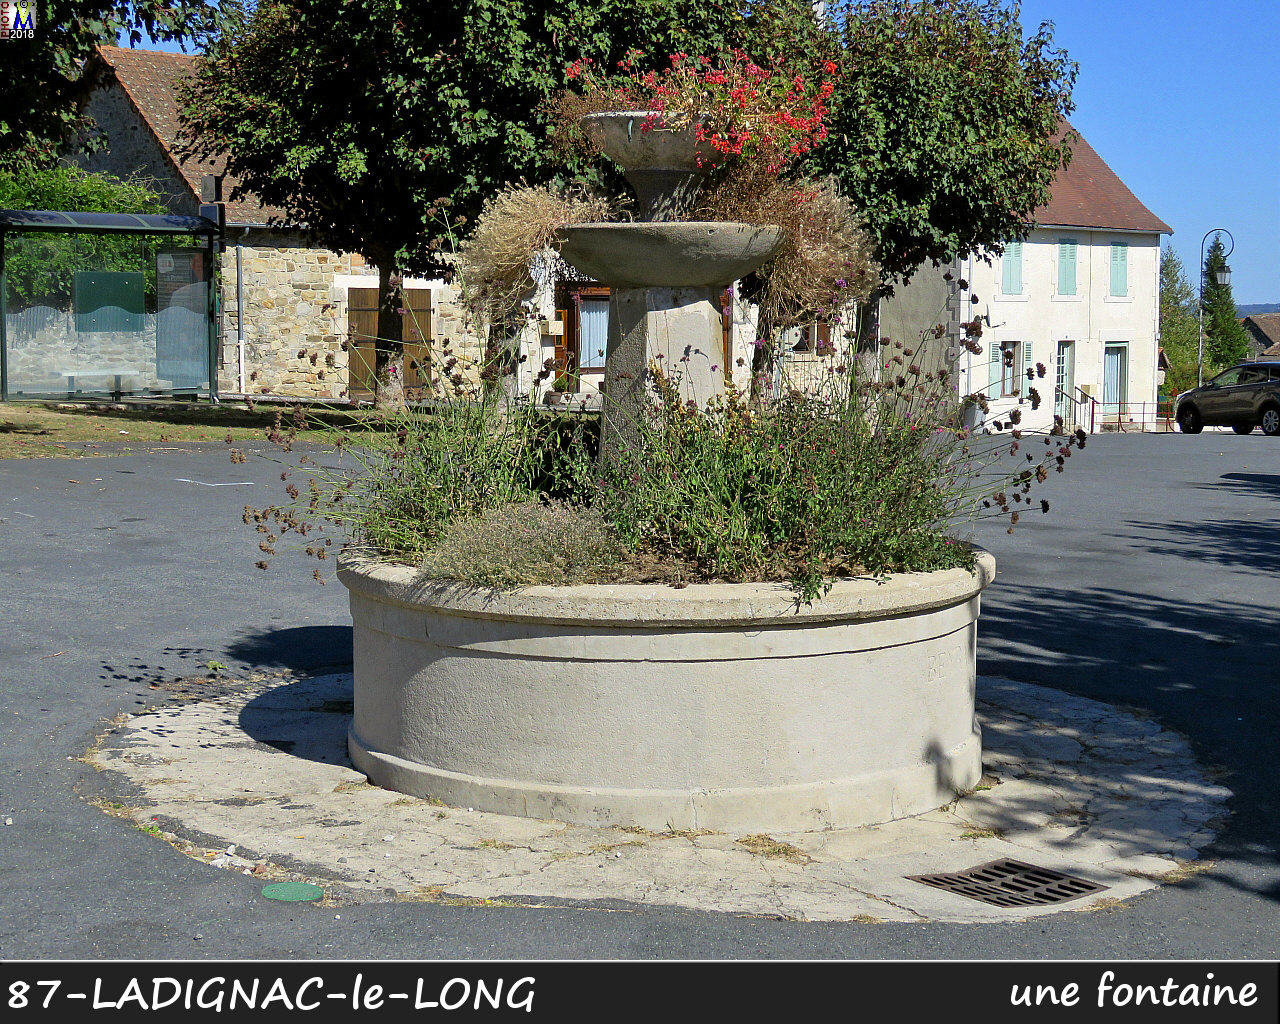 87LADIGNAC-LONG_fontaine_100.jpg